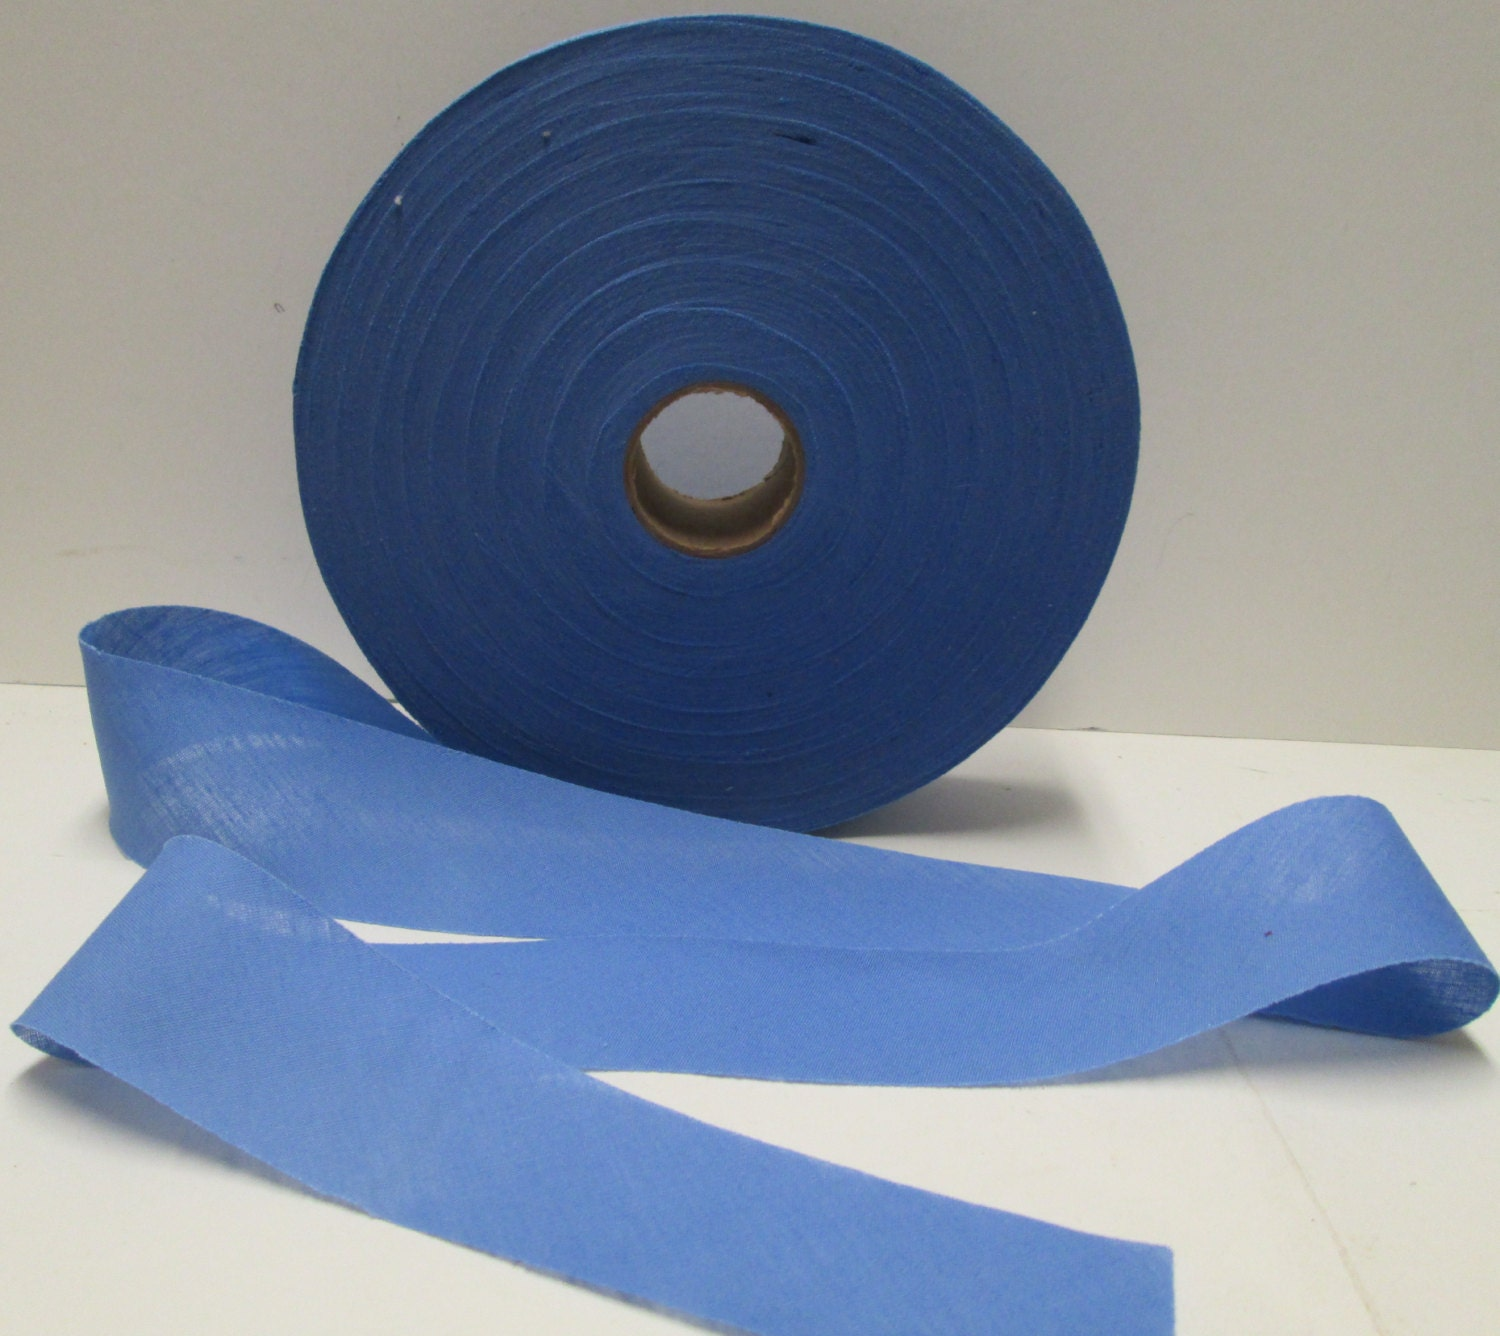 Bias Tape Roll 125 Yd Blue Sewing Trim 1.2 Cotton Quilt